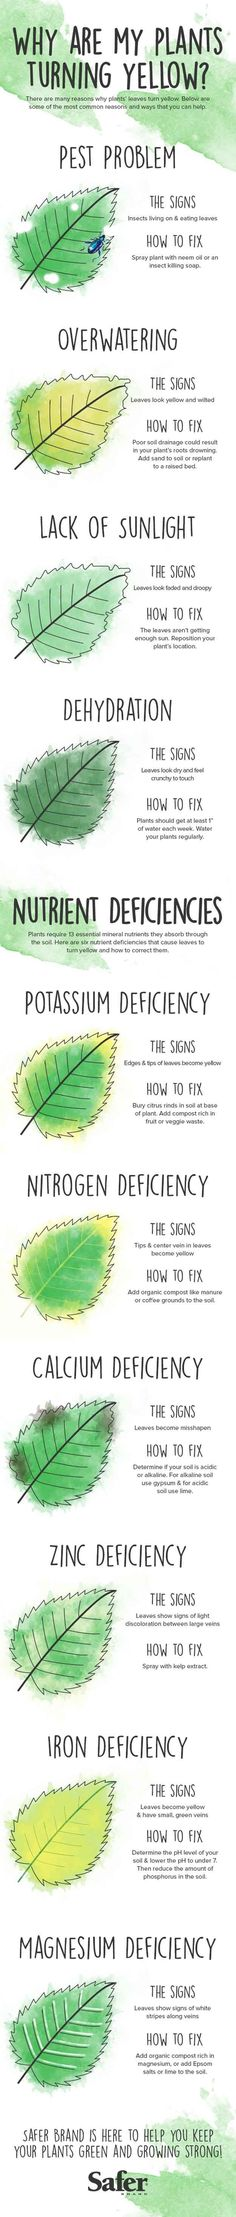 Plant Leaves Turning Yellow? - Homesteading HQ | Pioneer Settler